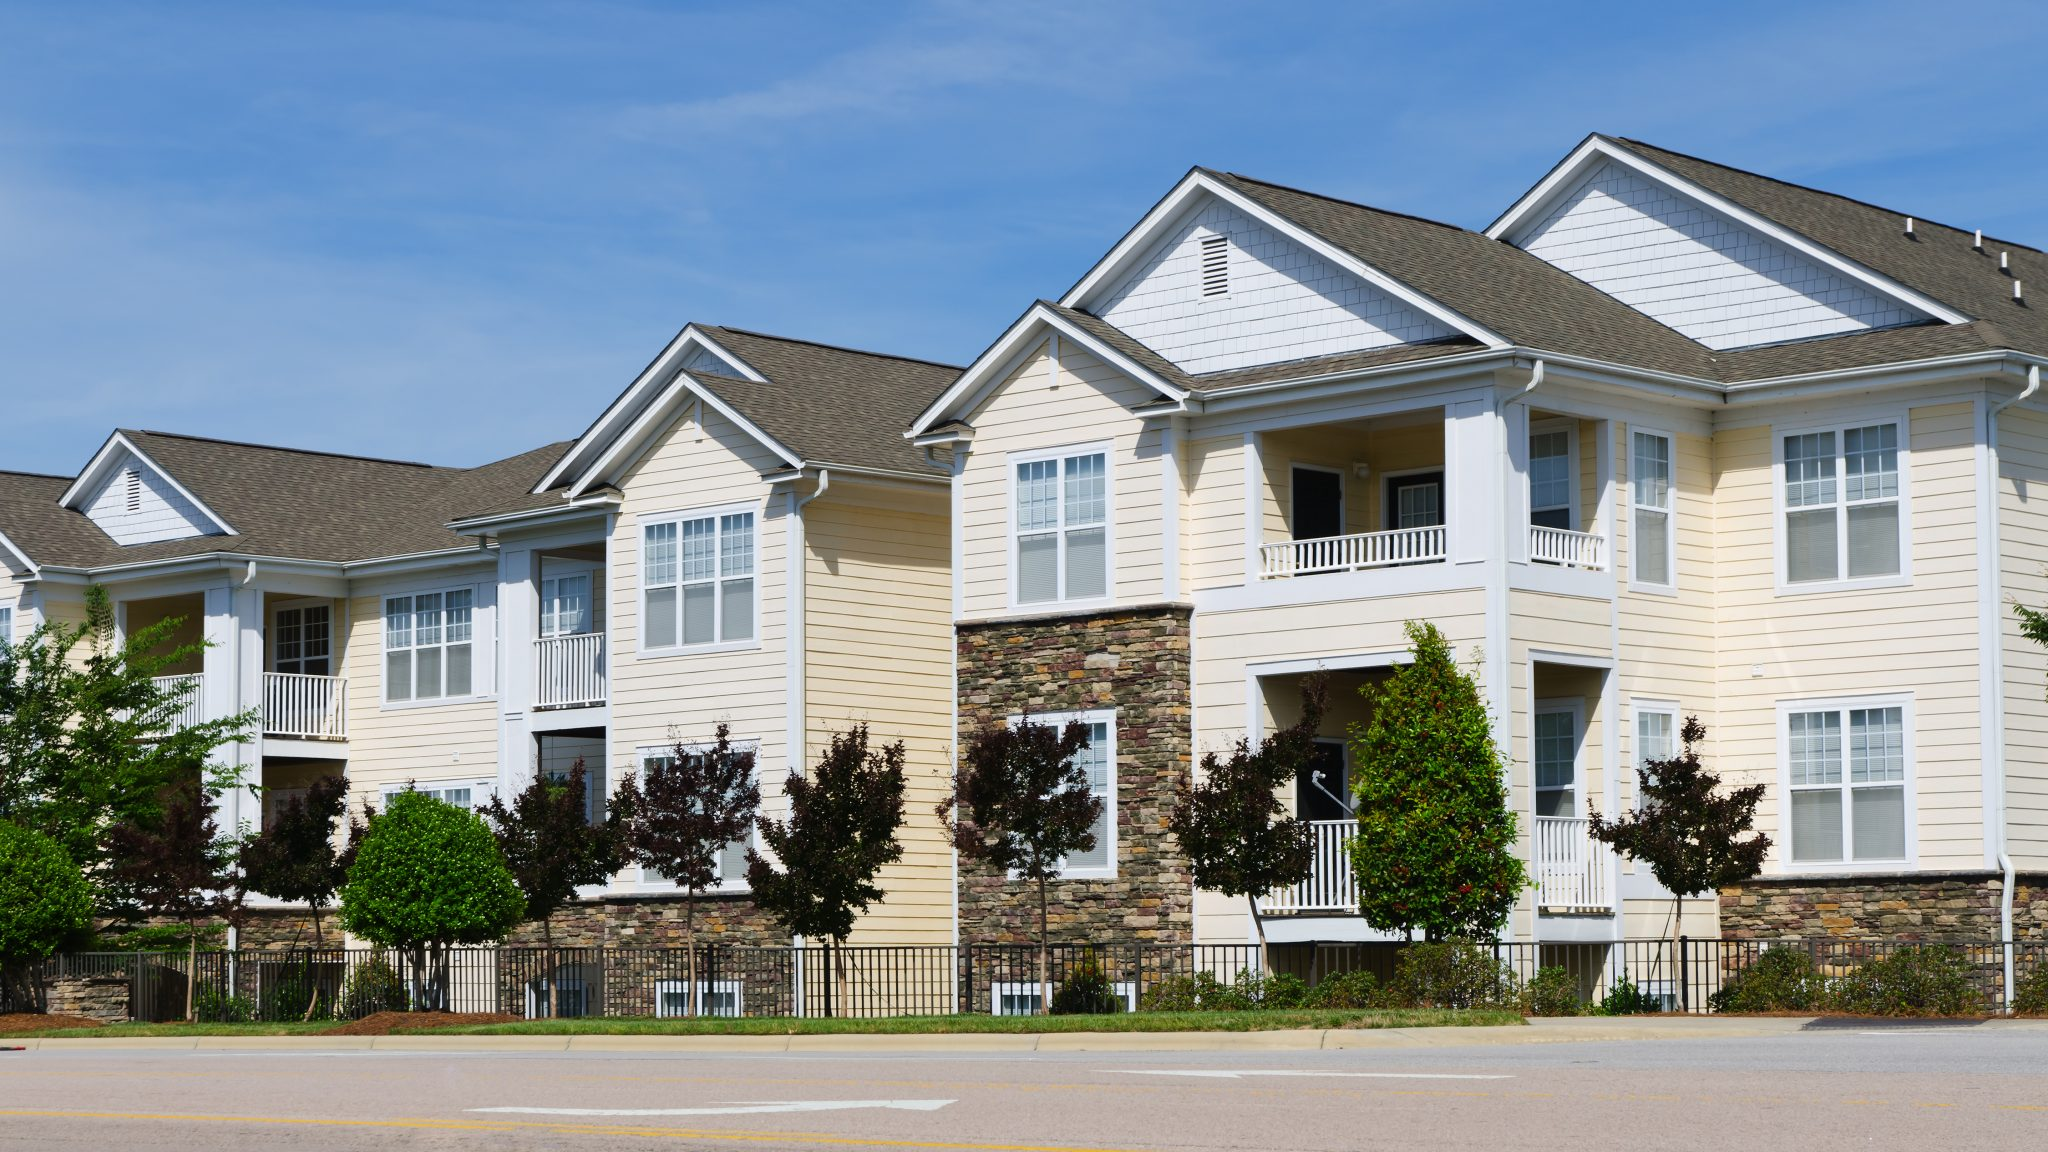 multifamily building in a residential area